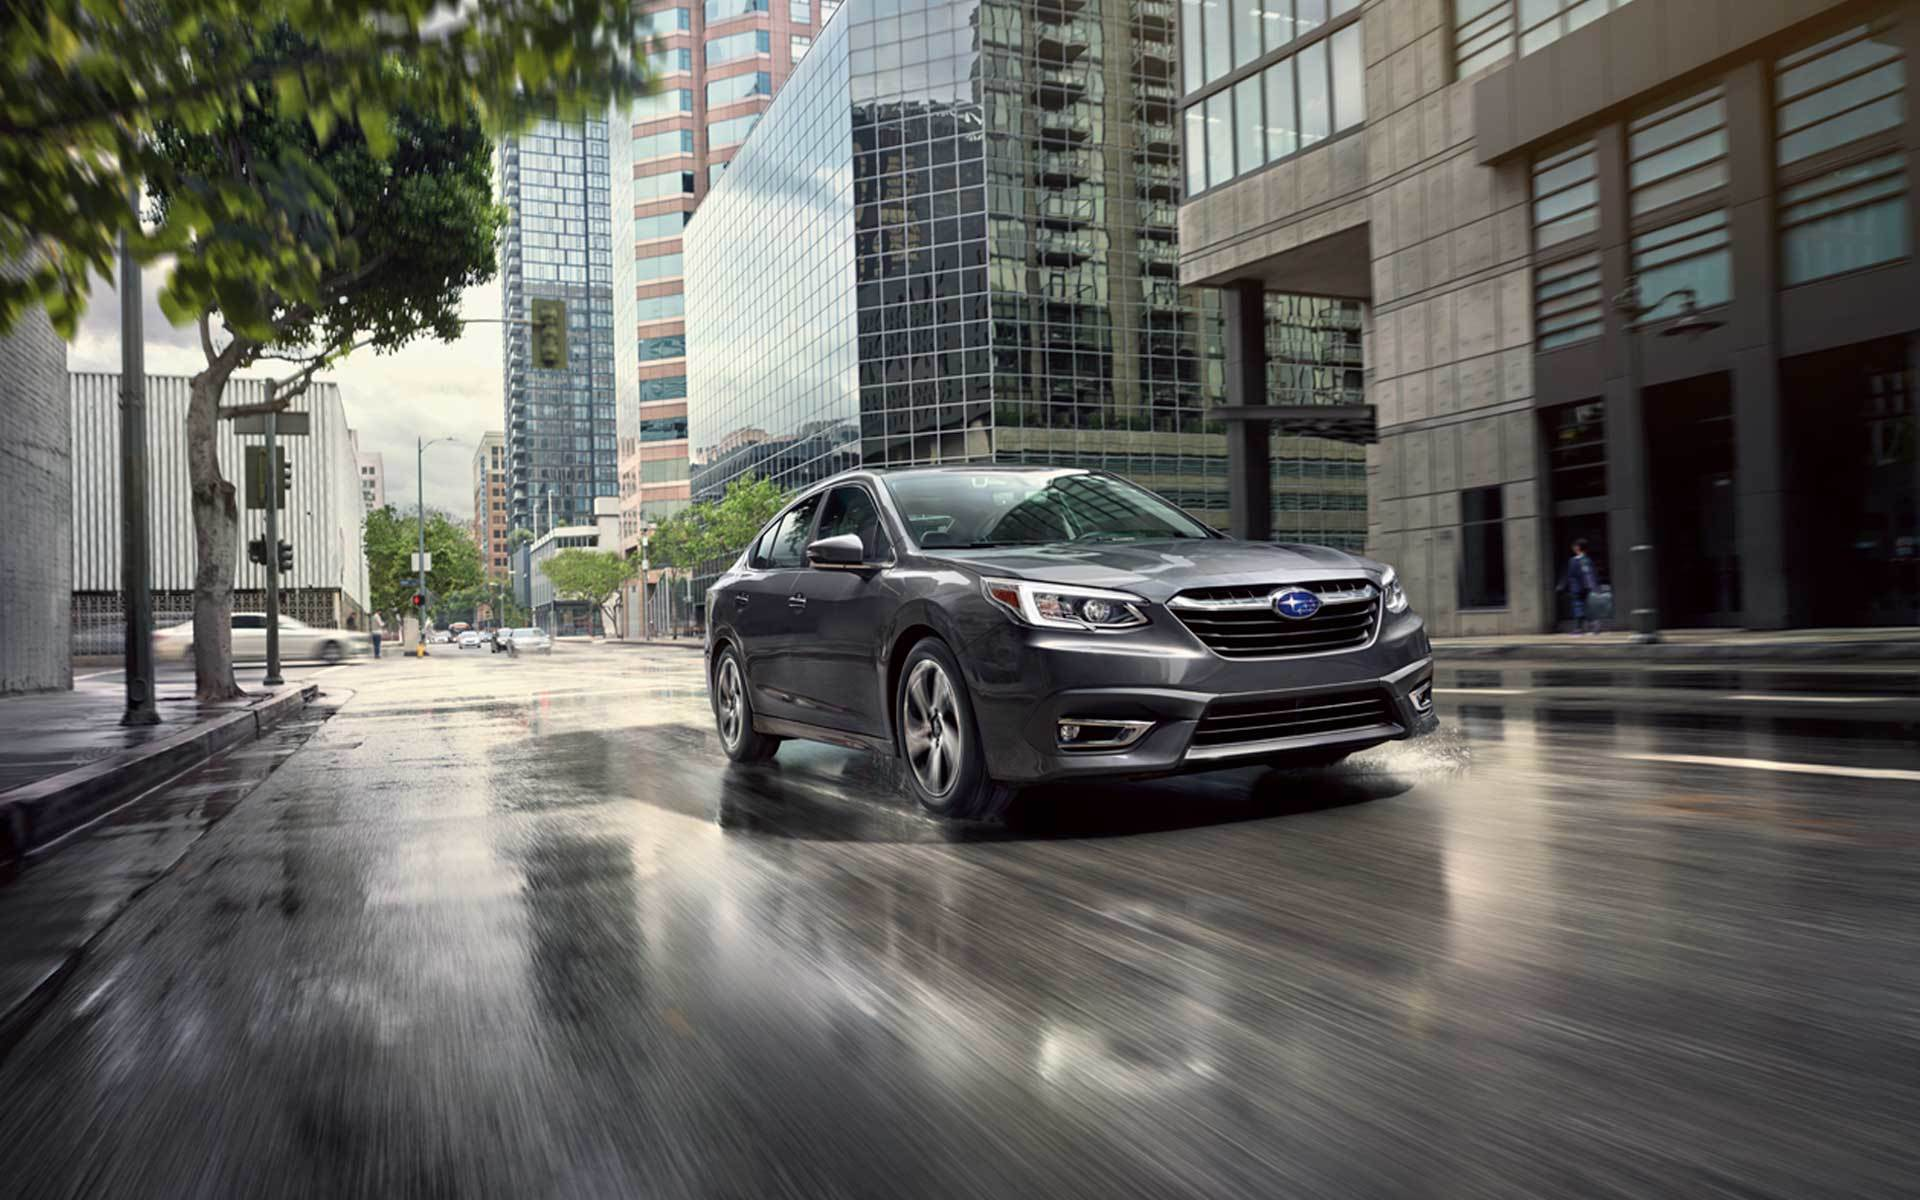 magnetite gray metallic 2020 subaru legacy driving through the city after rain